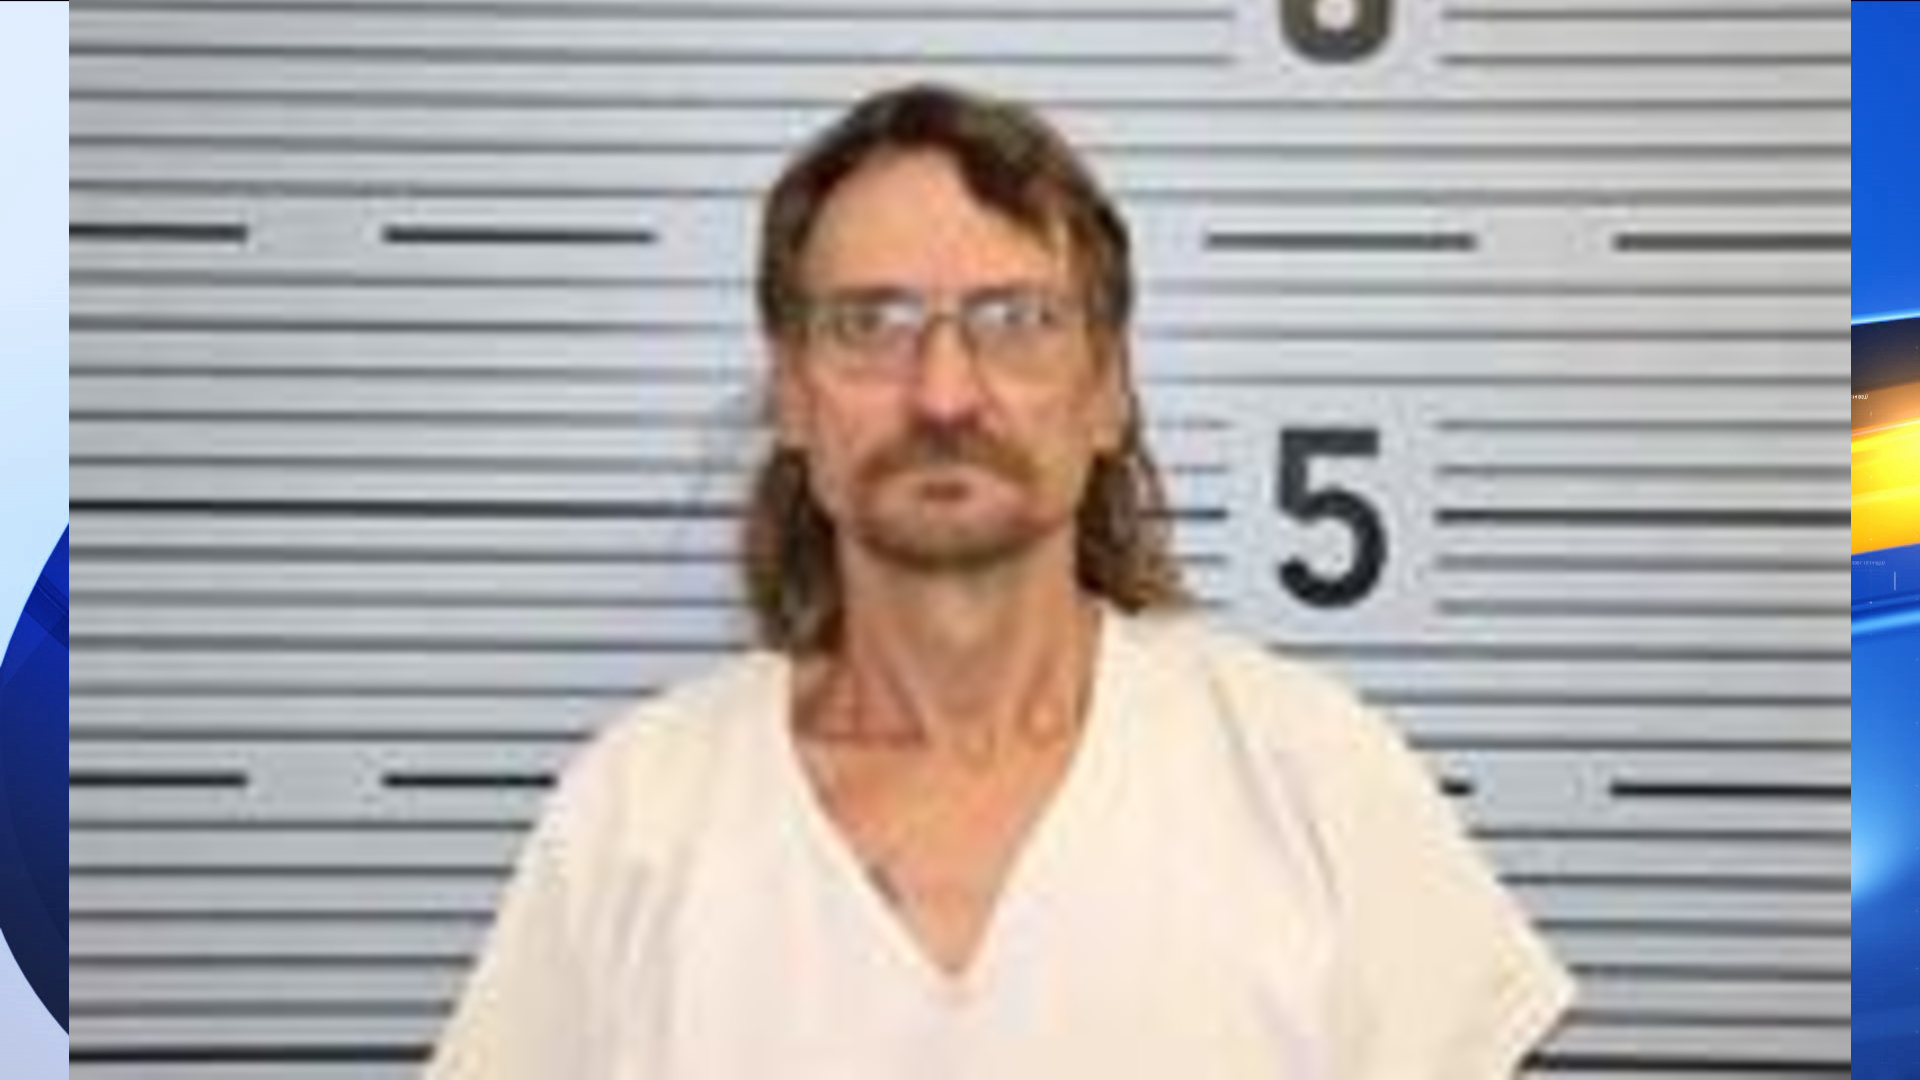 Multiple agencies, including ALEA, were called in to help search for William Martin Holt.